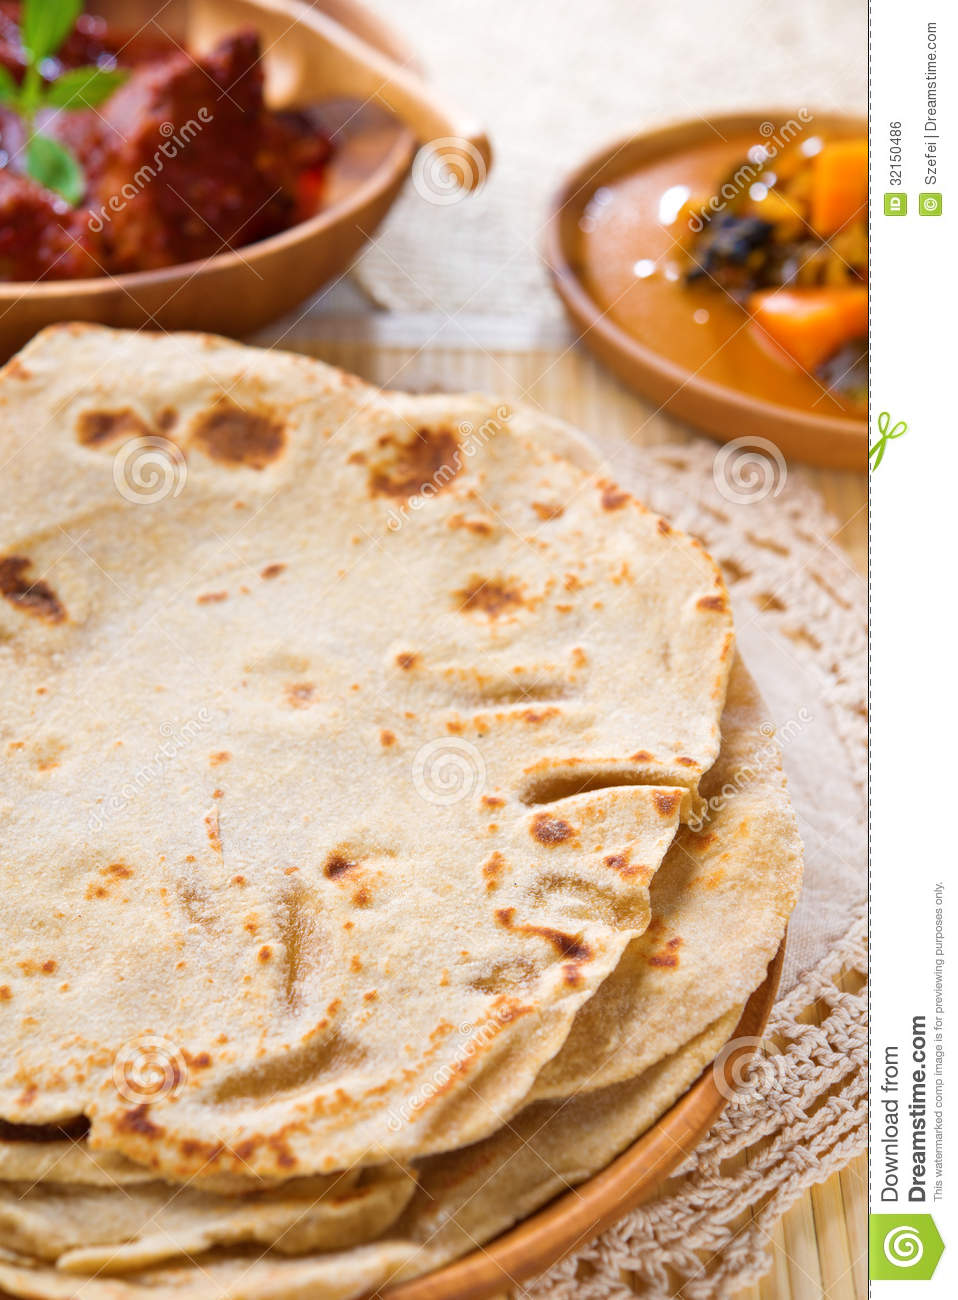 Chapati or Flat bread, Indian food, made from wheat flour dough ...